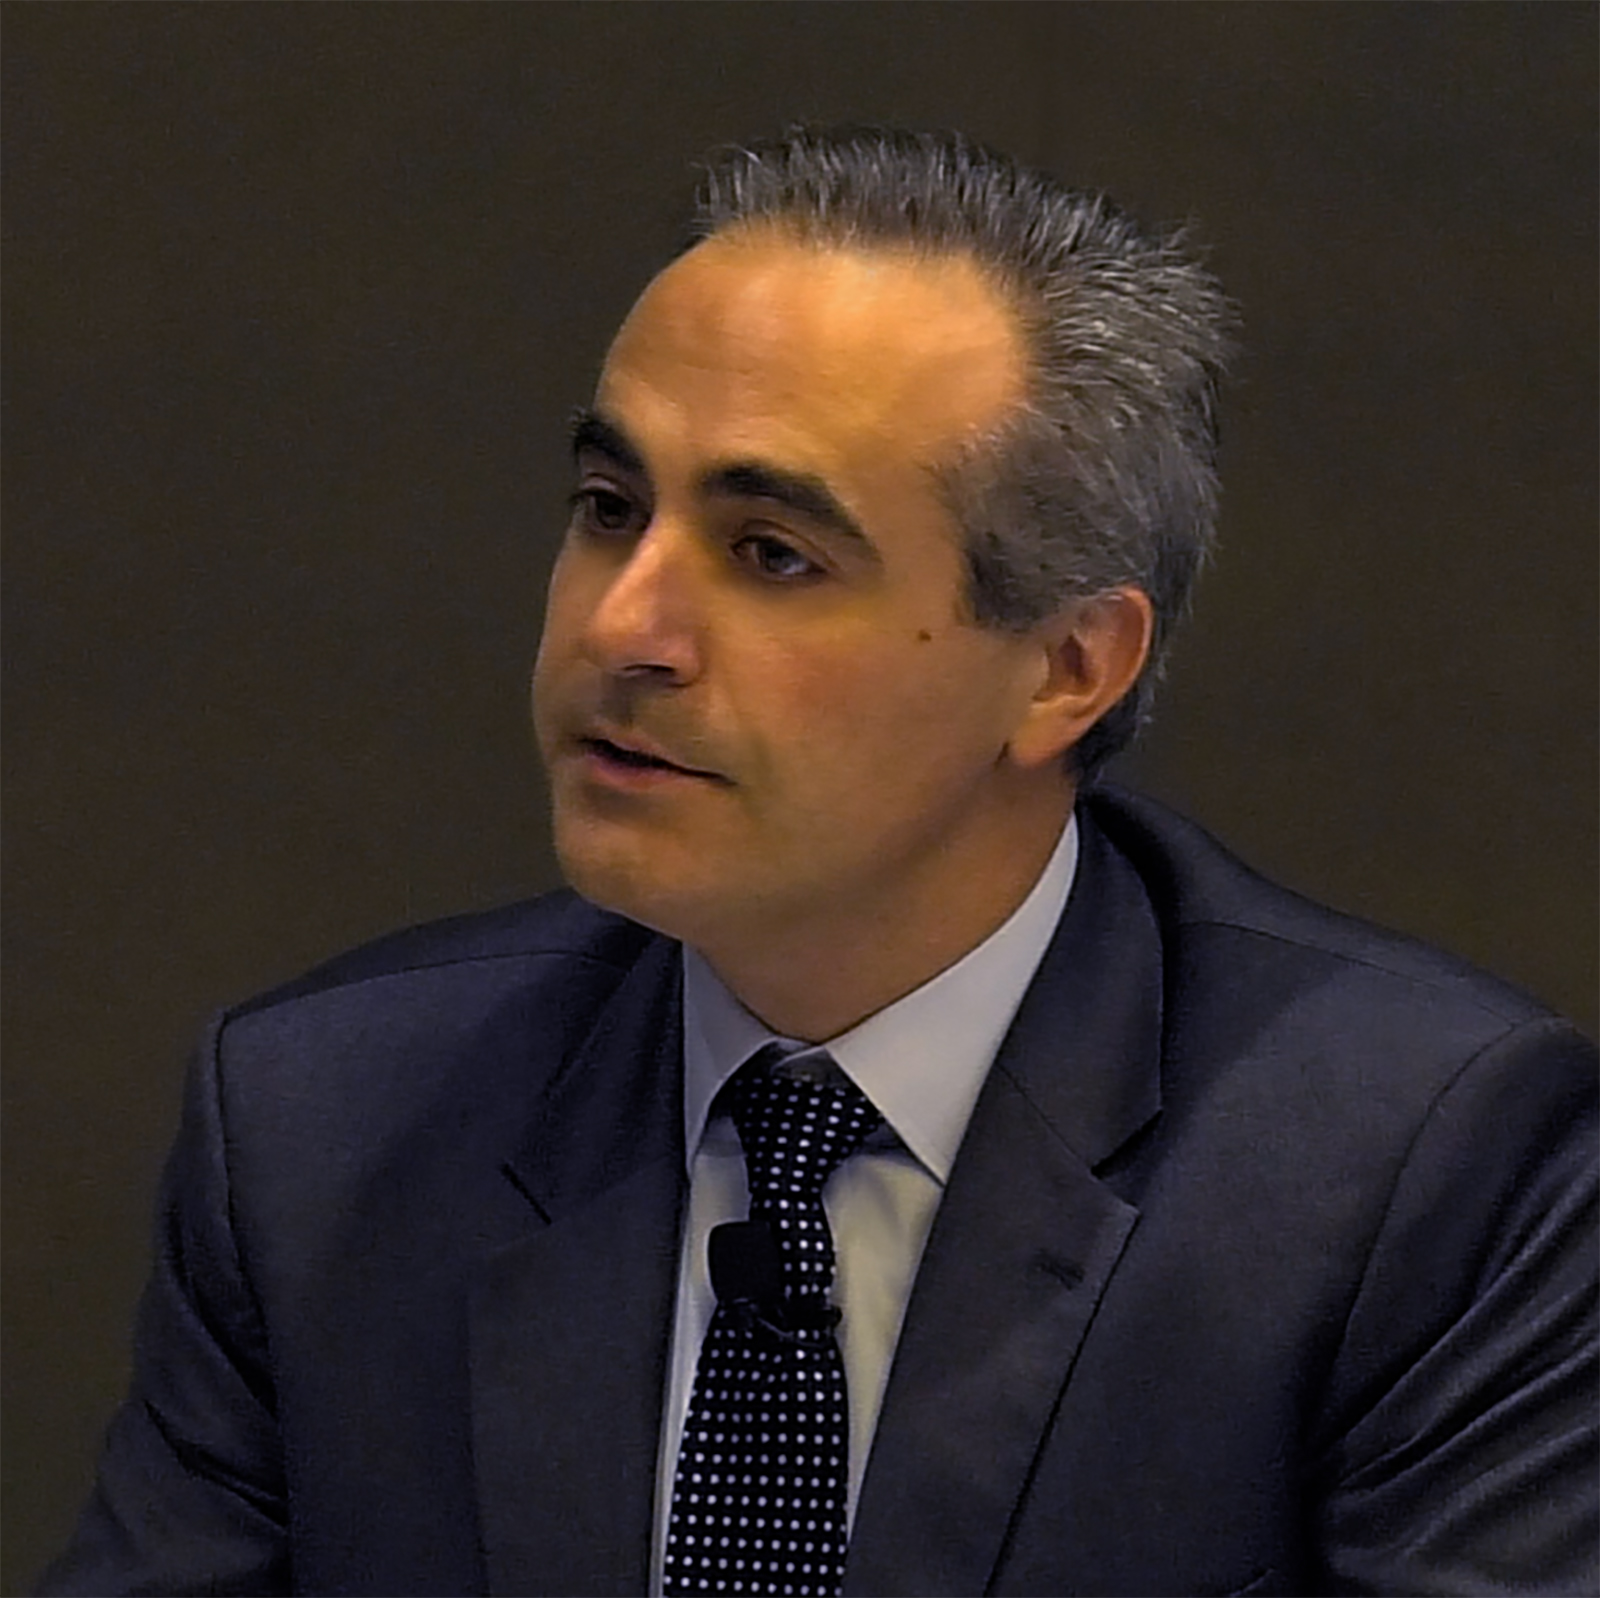 Stefano Marani - CEO of Renergen